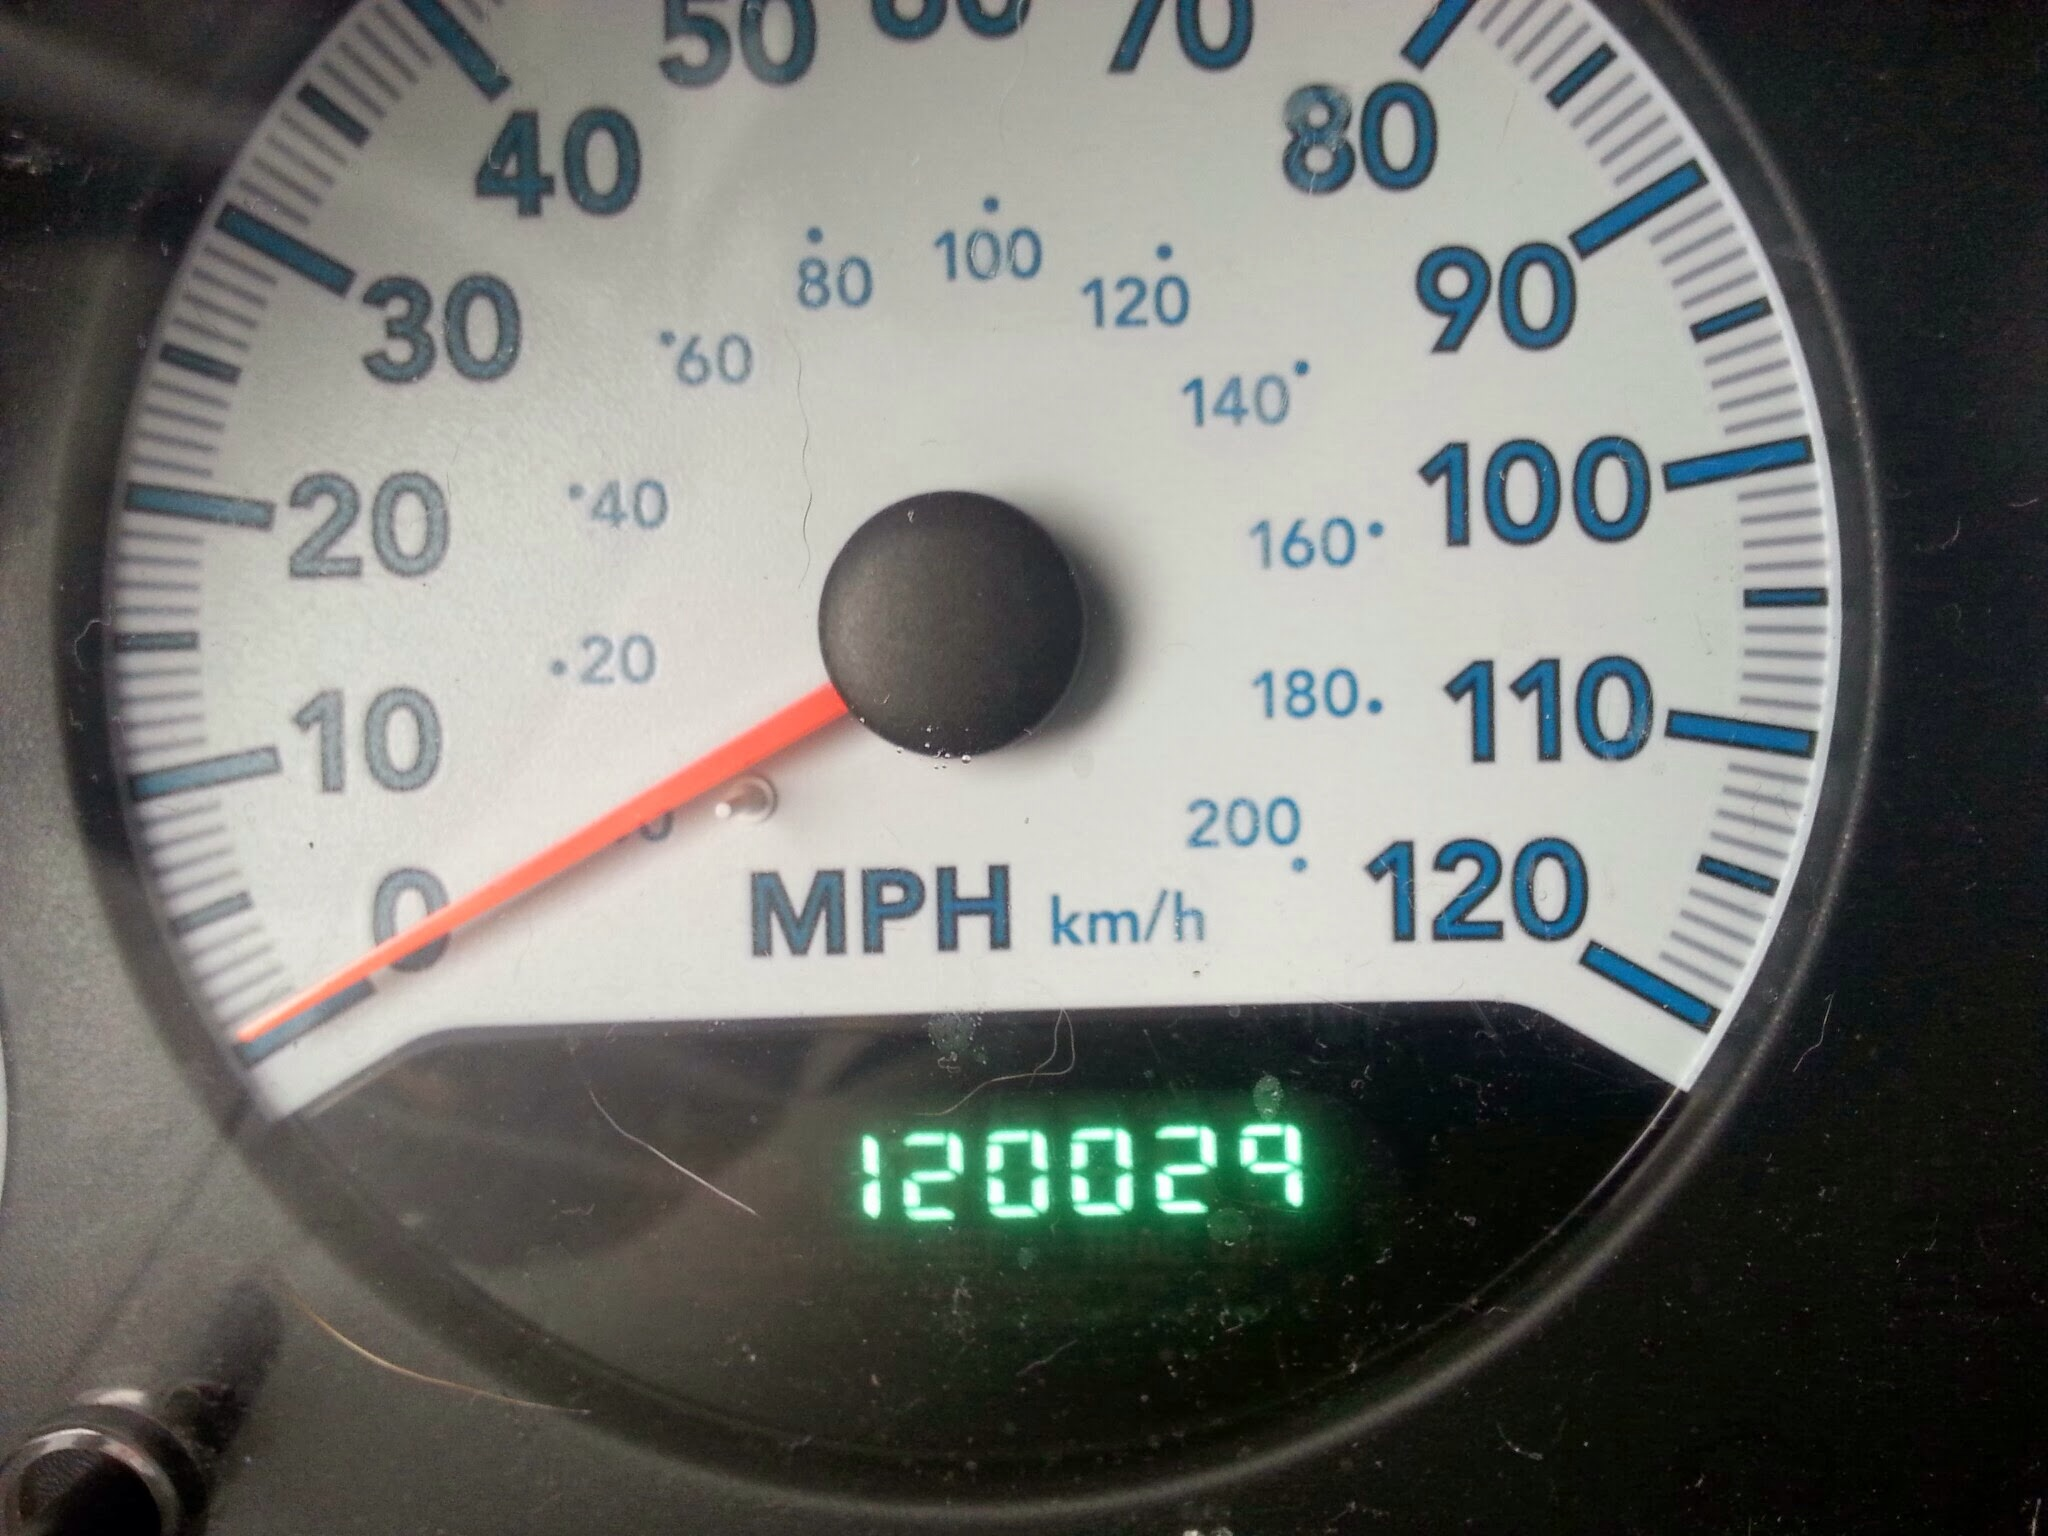 This odometer reading is *almost* a palendrome.